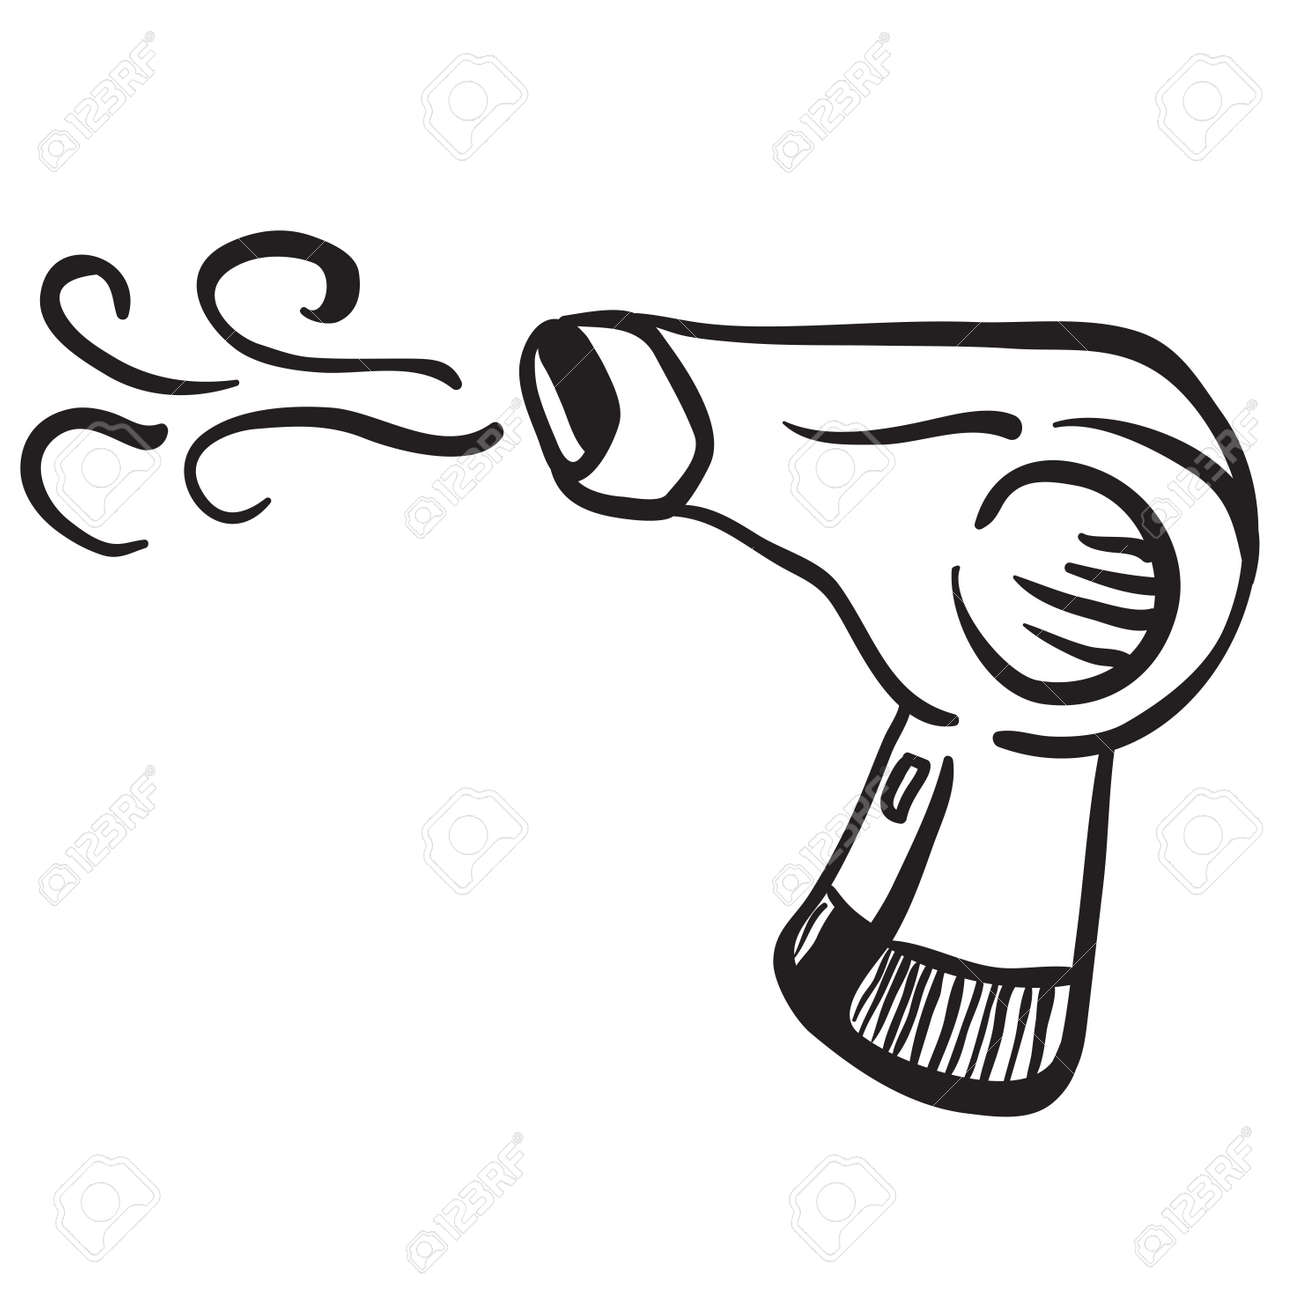 hight resolution of simple black and white hair dryer stock vector 55349685